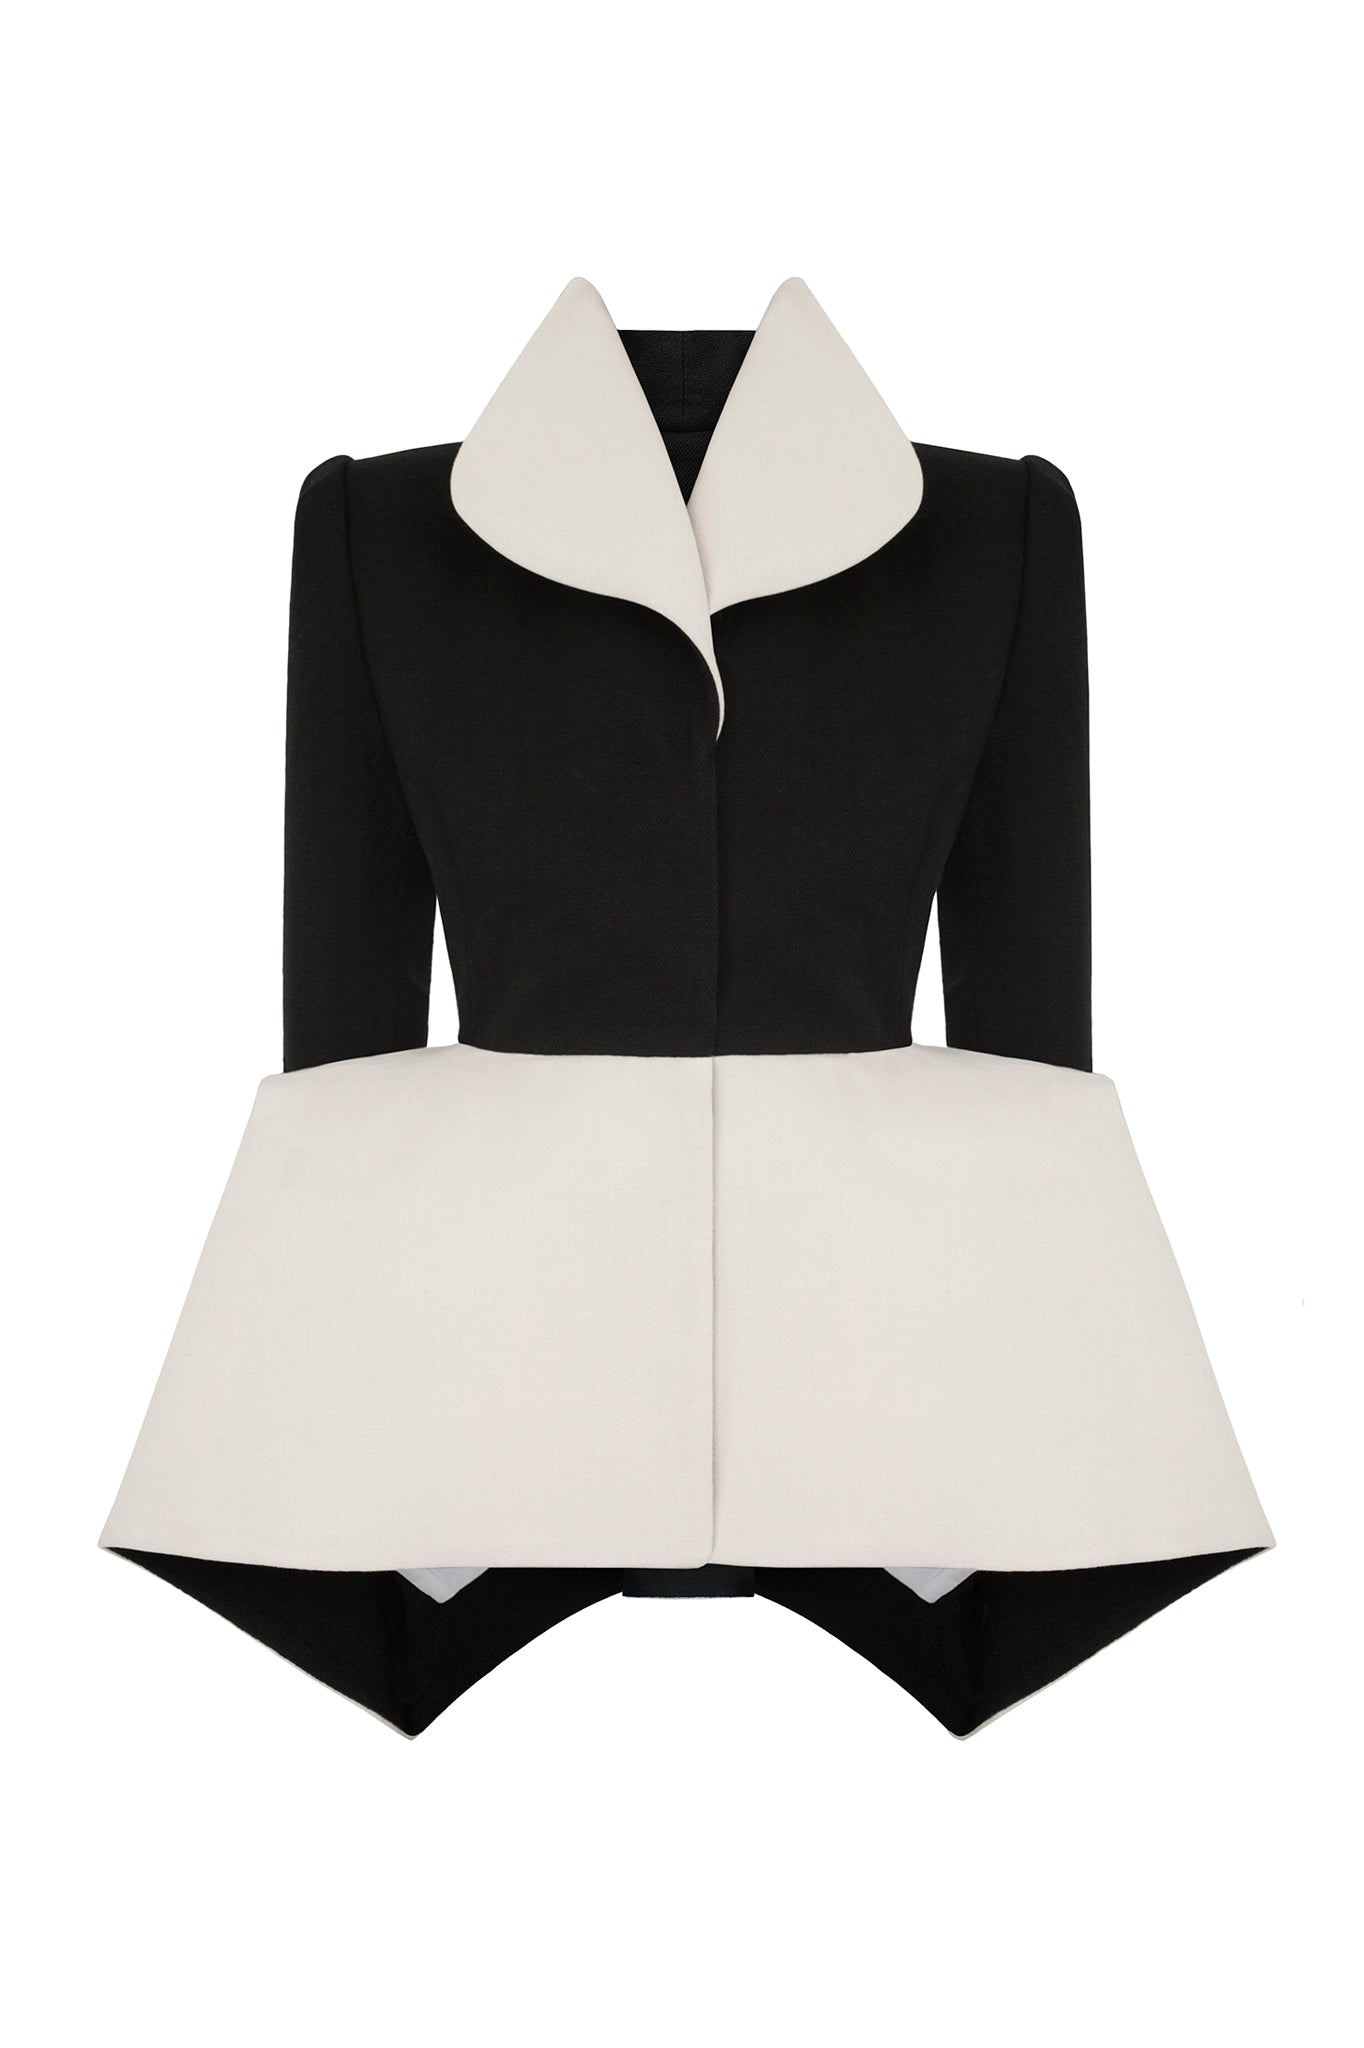 Cimone's 'Garbo' jacket has a close fitting form with a small, neat, shoulder line, brought to life by a gravity defying triangular peplum shape at the hem.